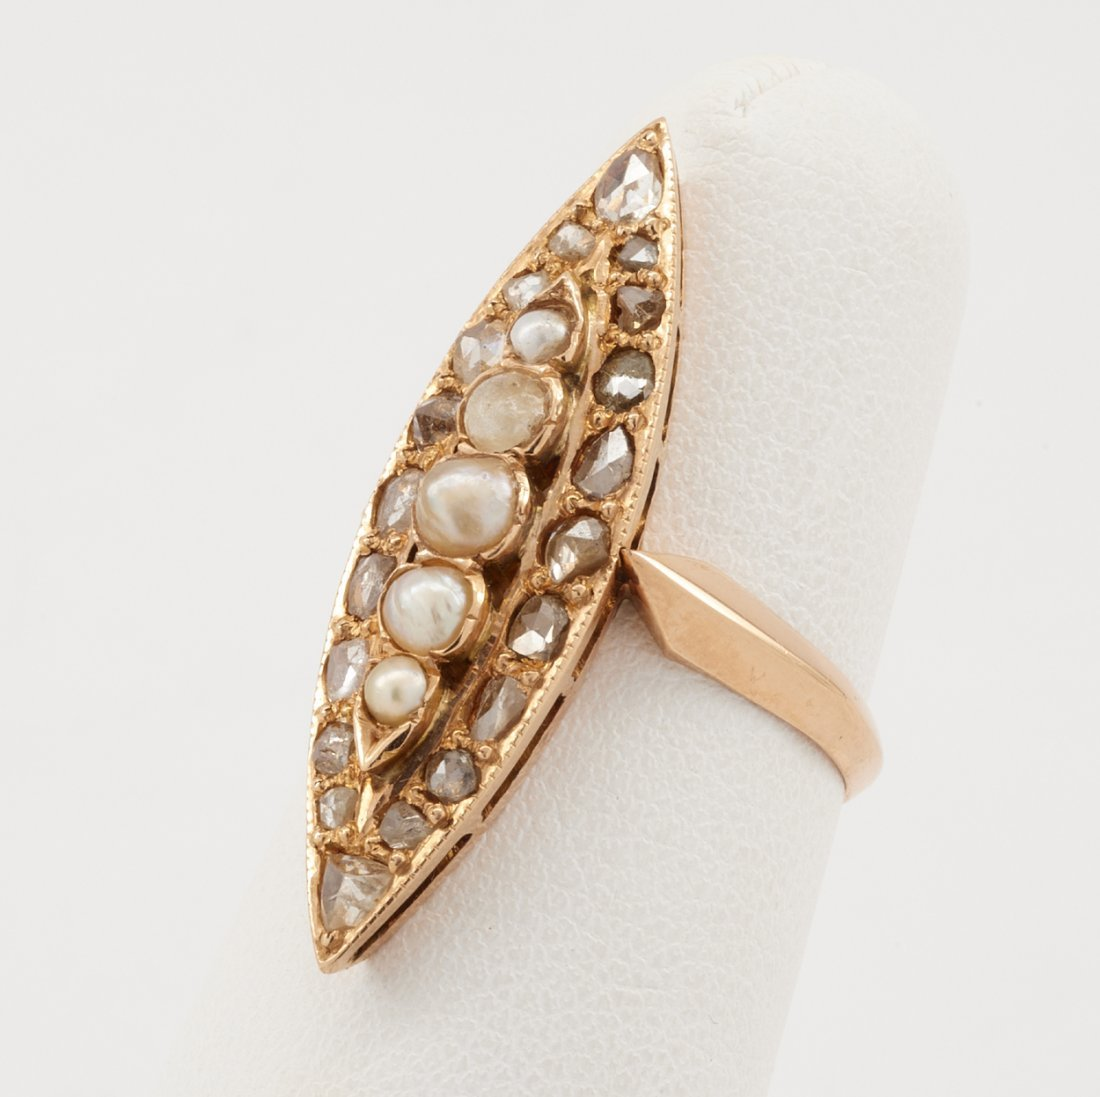 18k Rose gold, pearl & diamond navette ring - 2